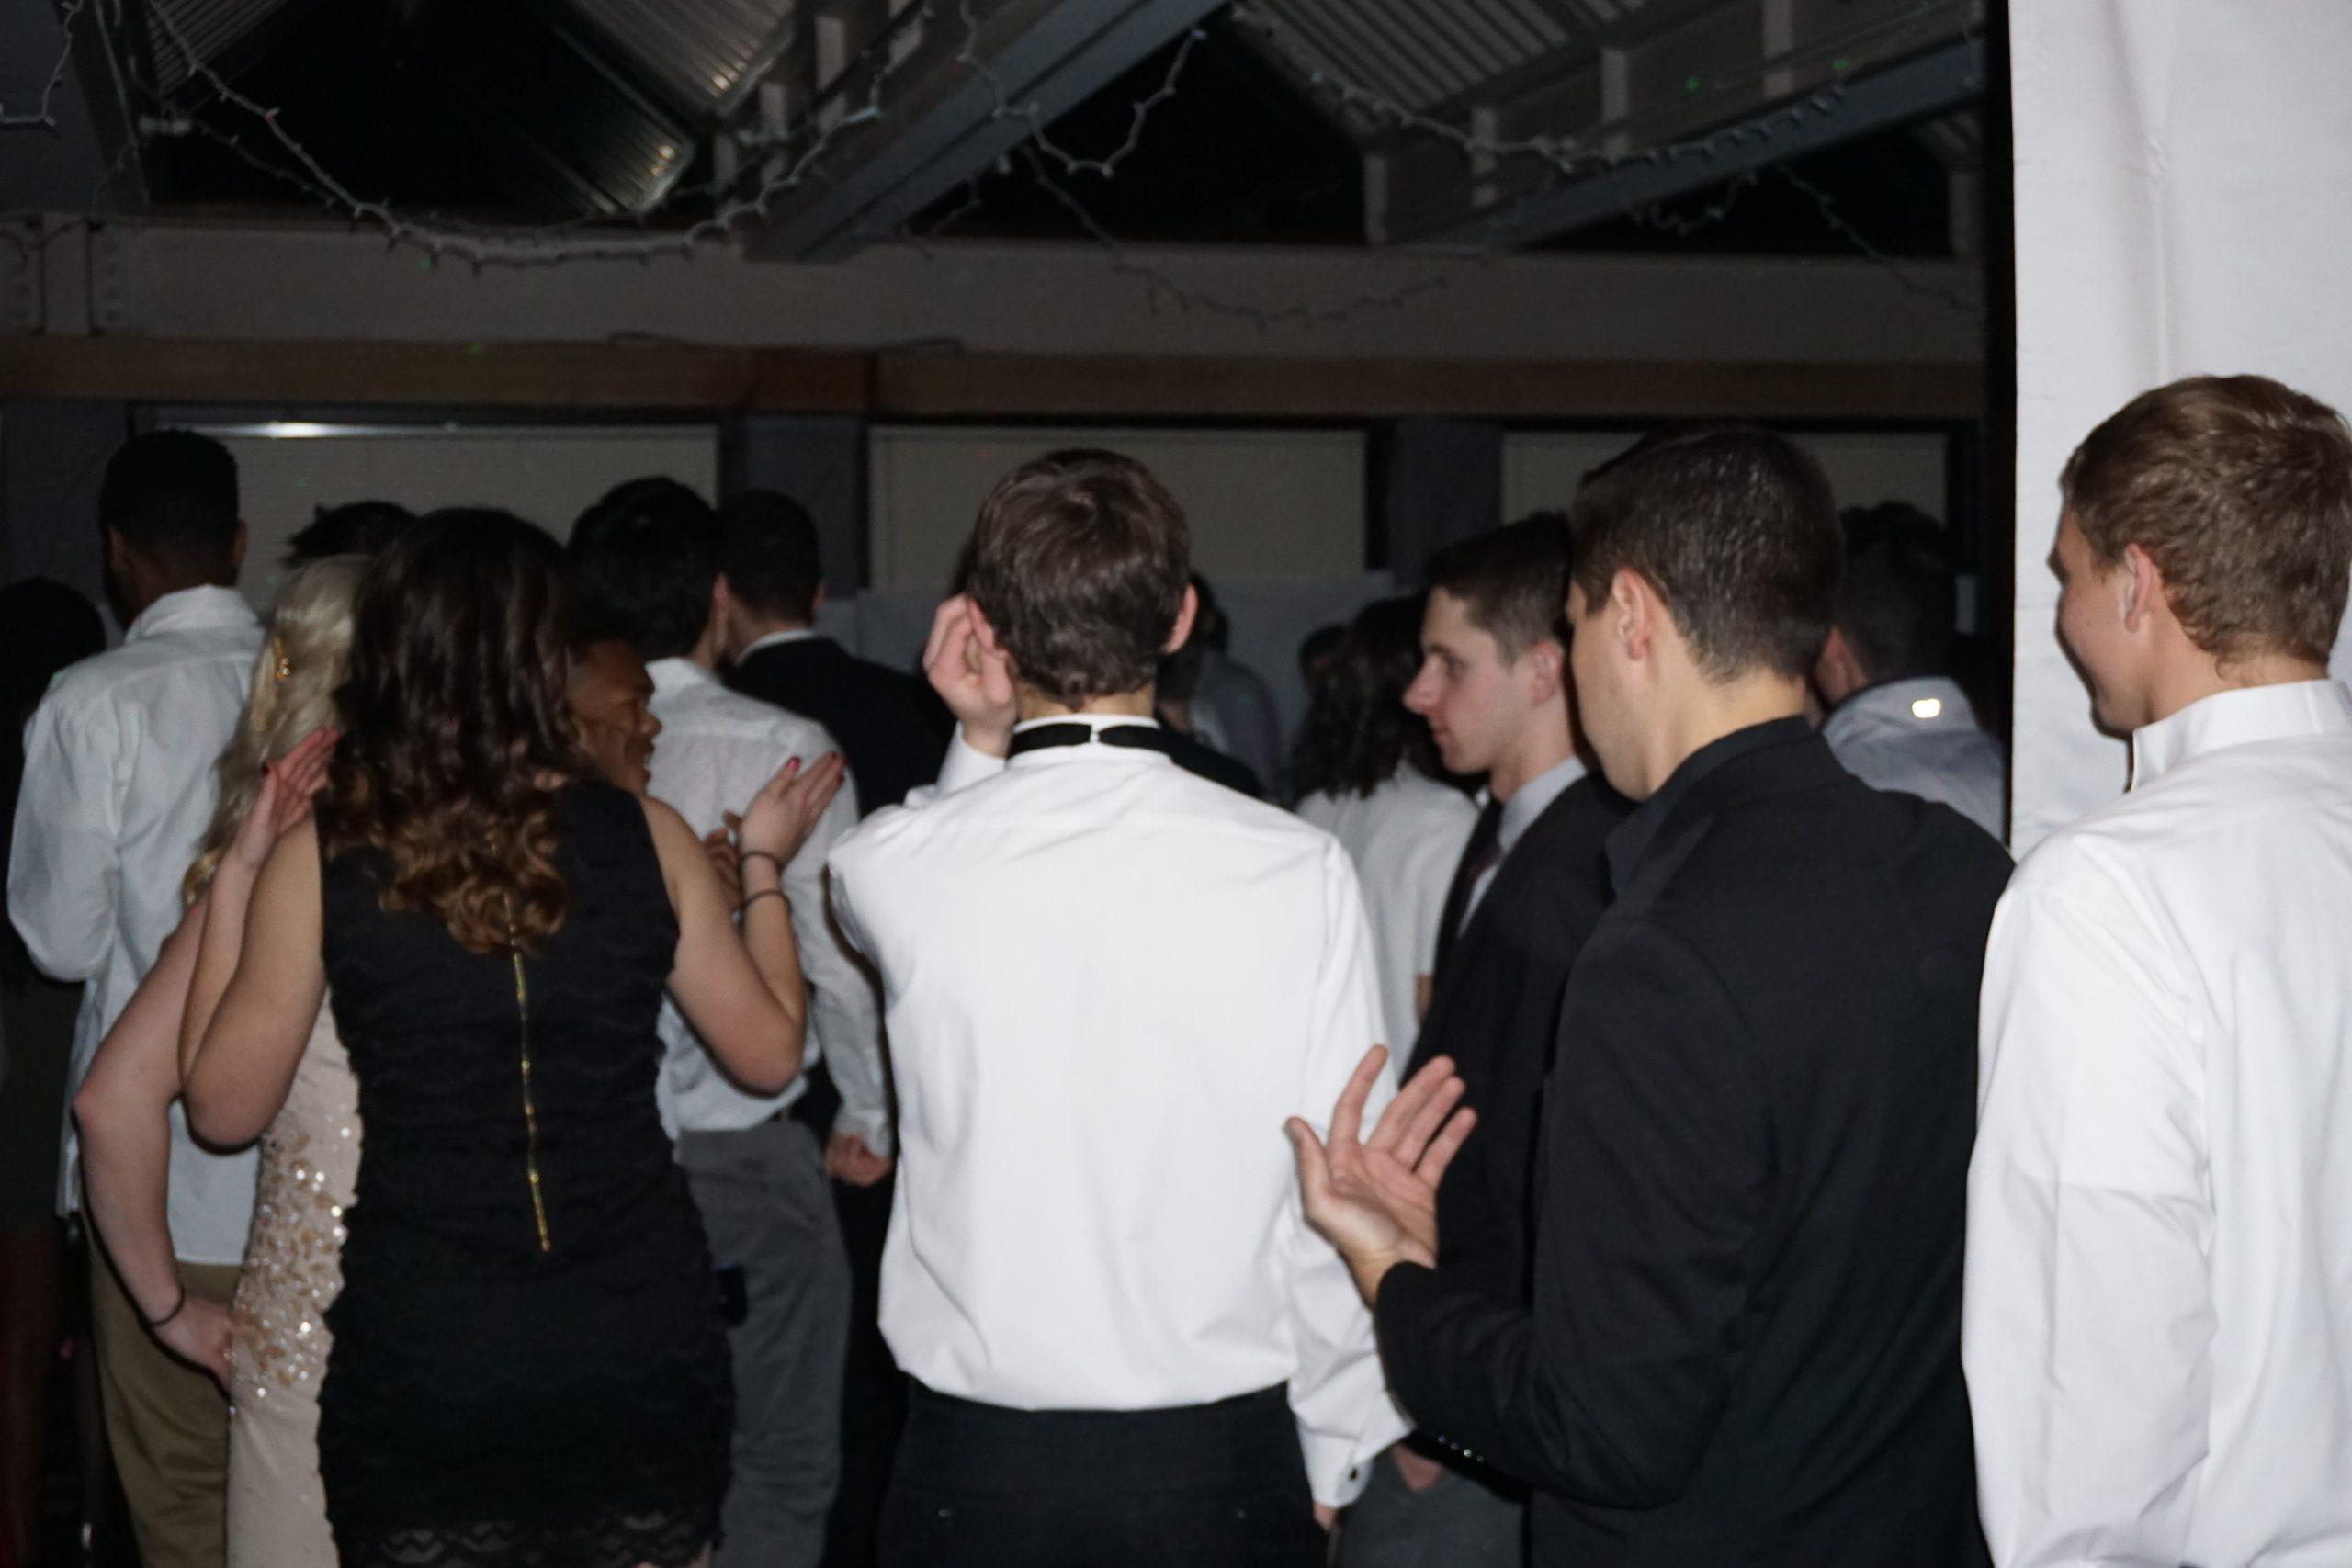 Students+danced+the+night+away+at+the+Annual+Upper+School+Senate-sponsored+Semiformal.